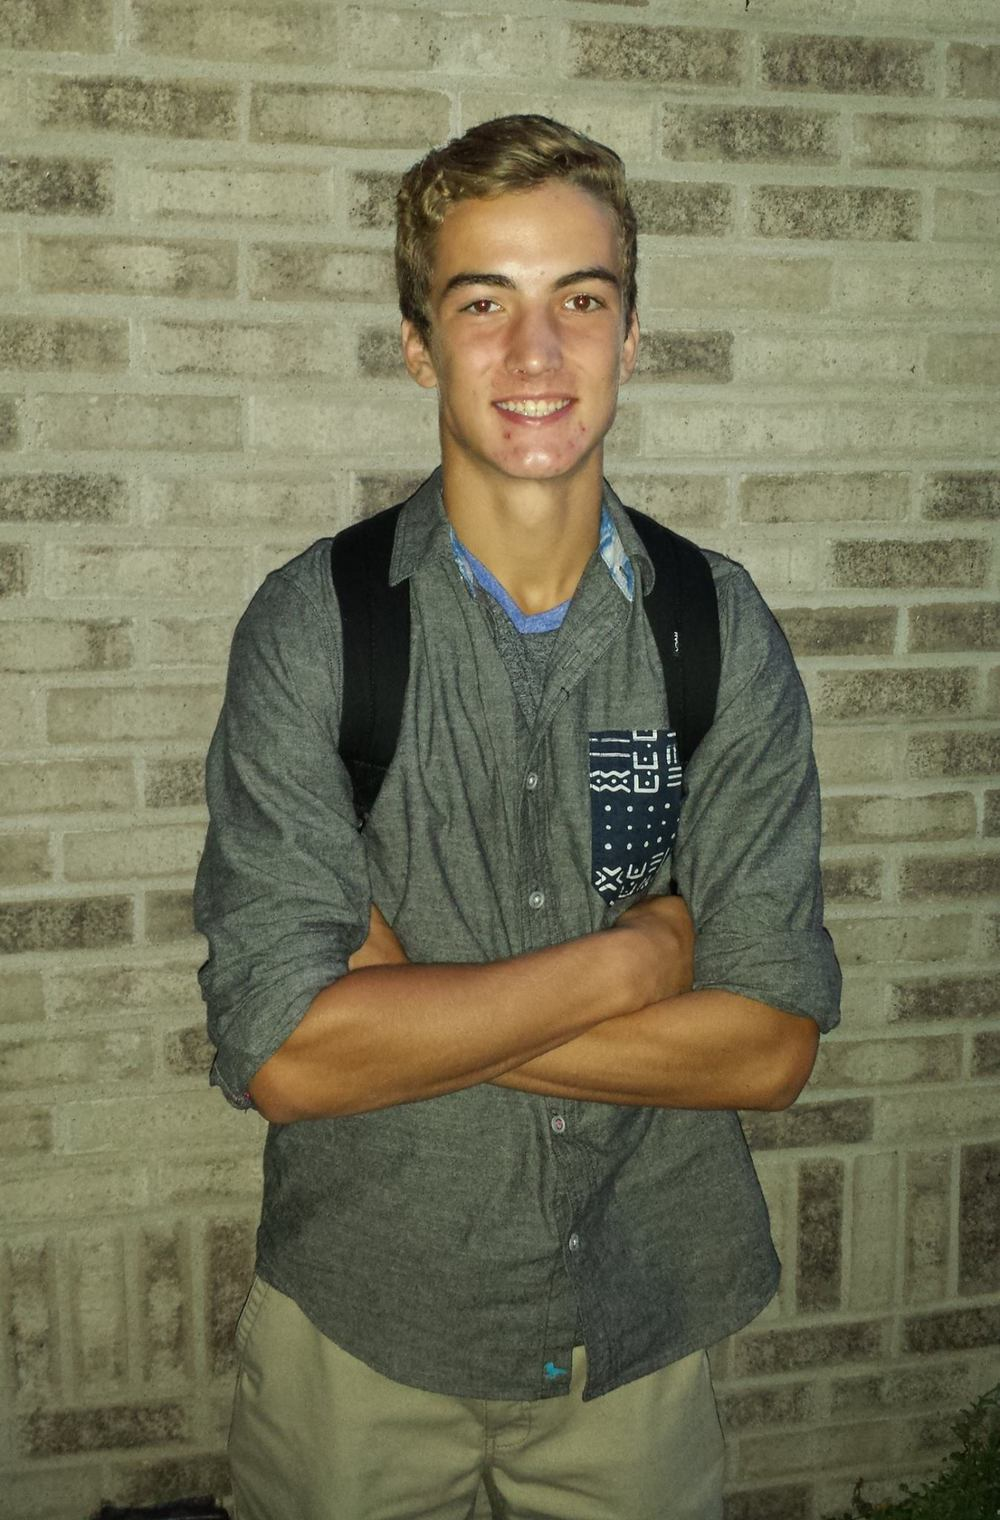 Dylan on his first day of High School - what a stud!